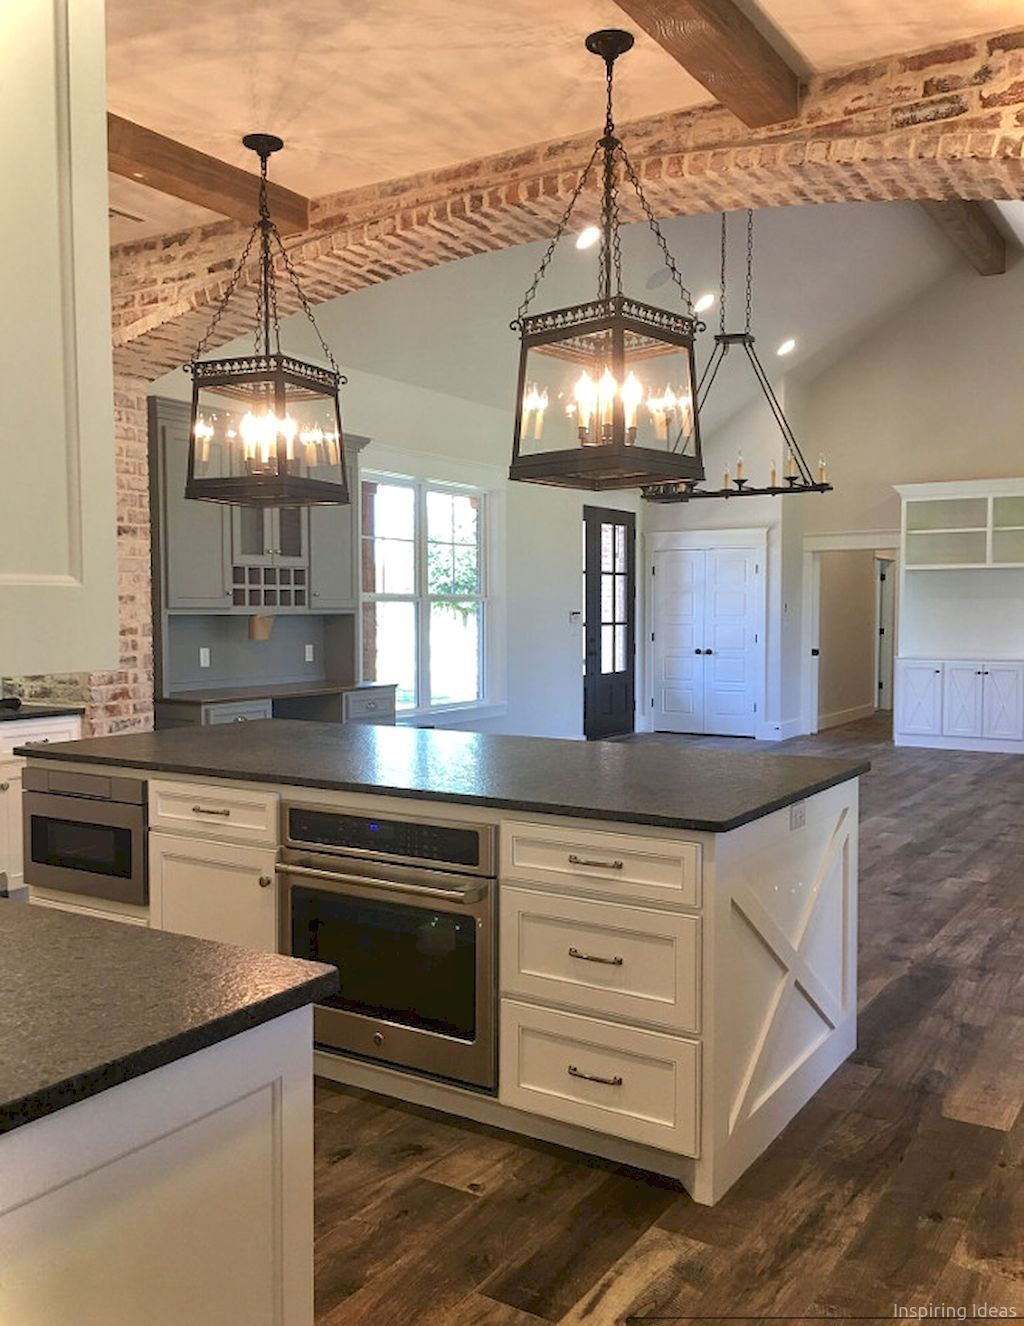 15 best rustic kitchen cabinet ideas and design gallery rustic kitchen cabinet ide farmhouse on kitchen island ideas modern farmhouse id=58681